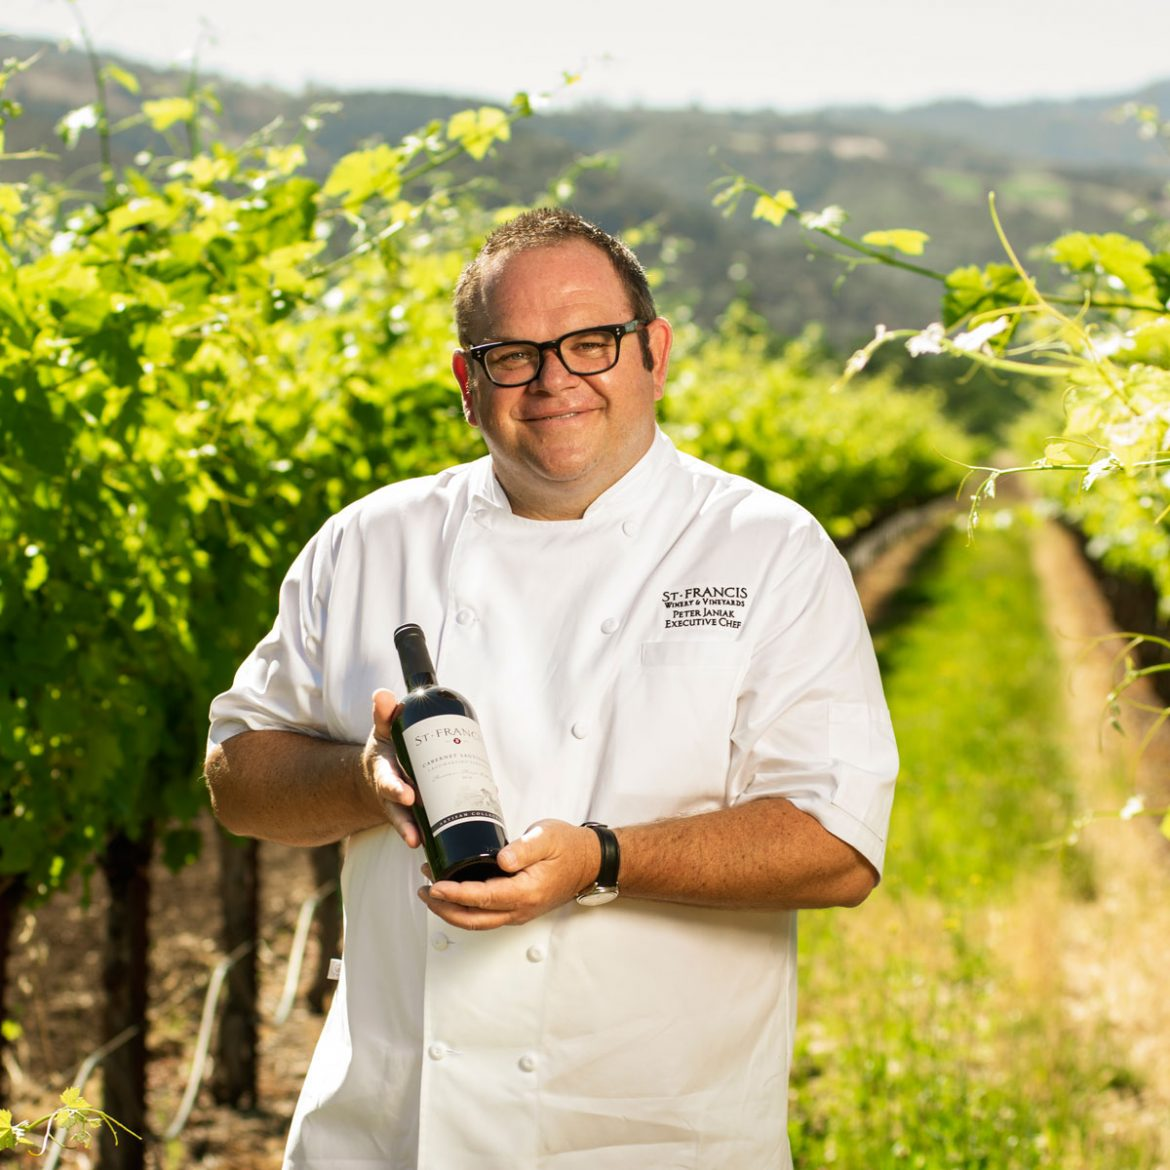 Enjoy the culinary stylings of Chef Janiak at St. Francis Winery